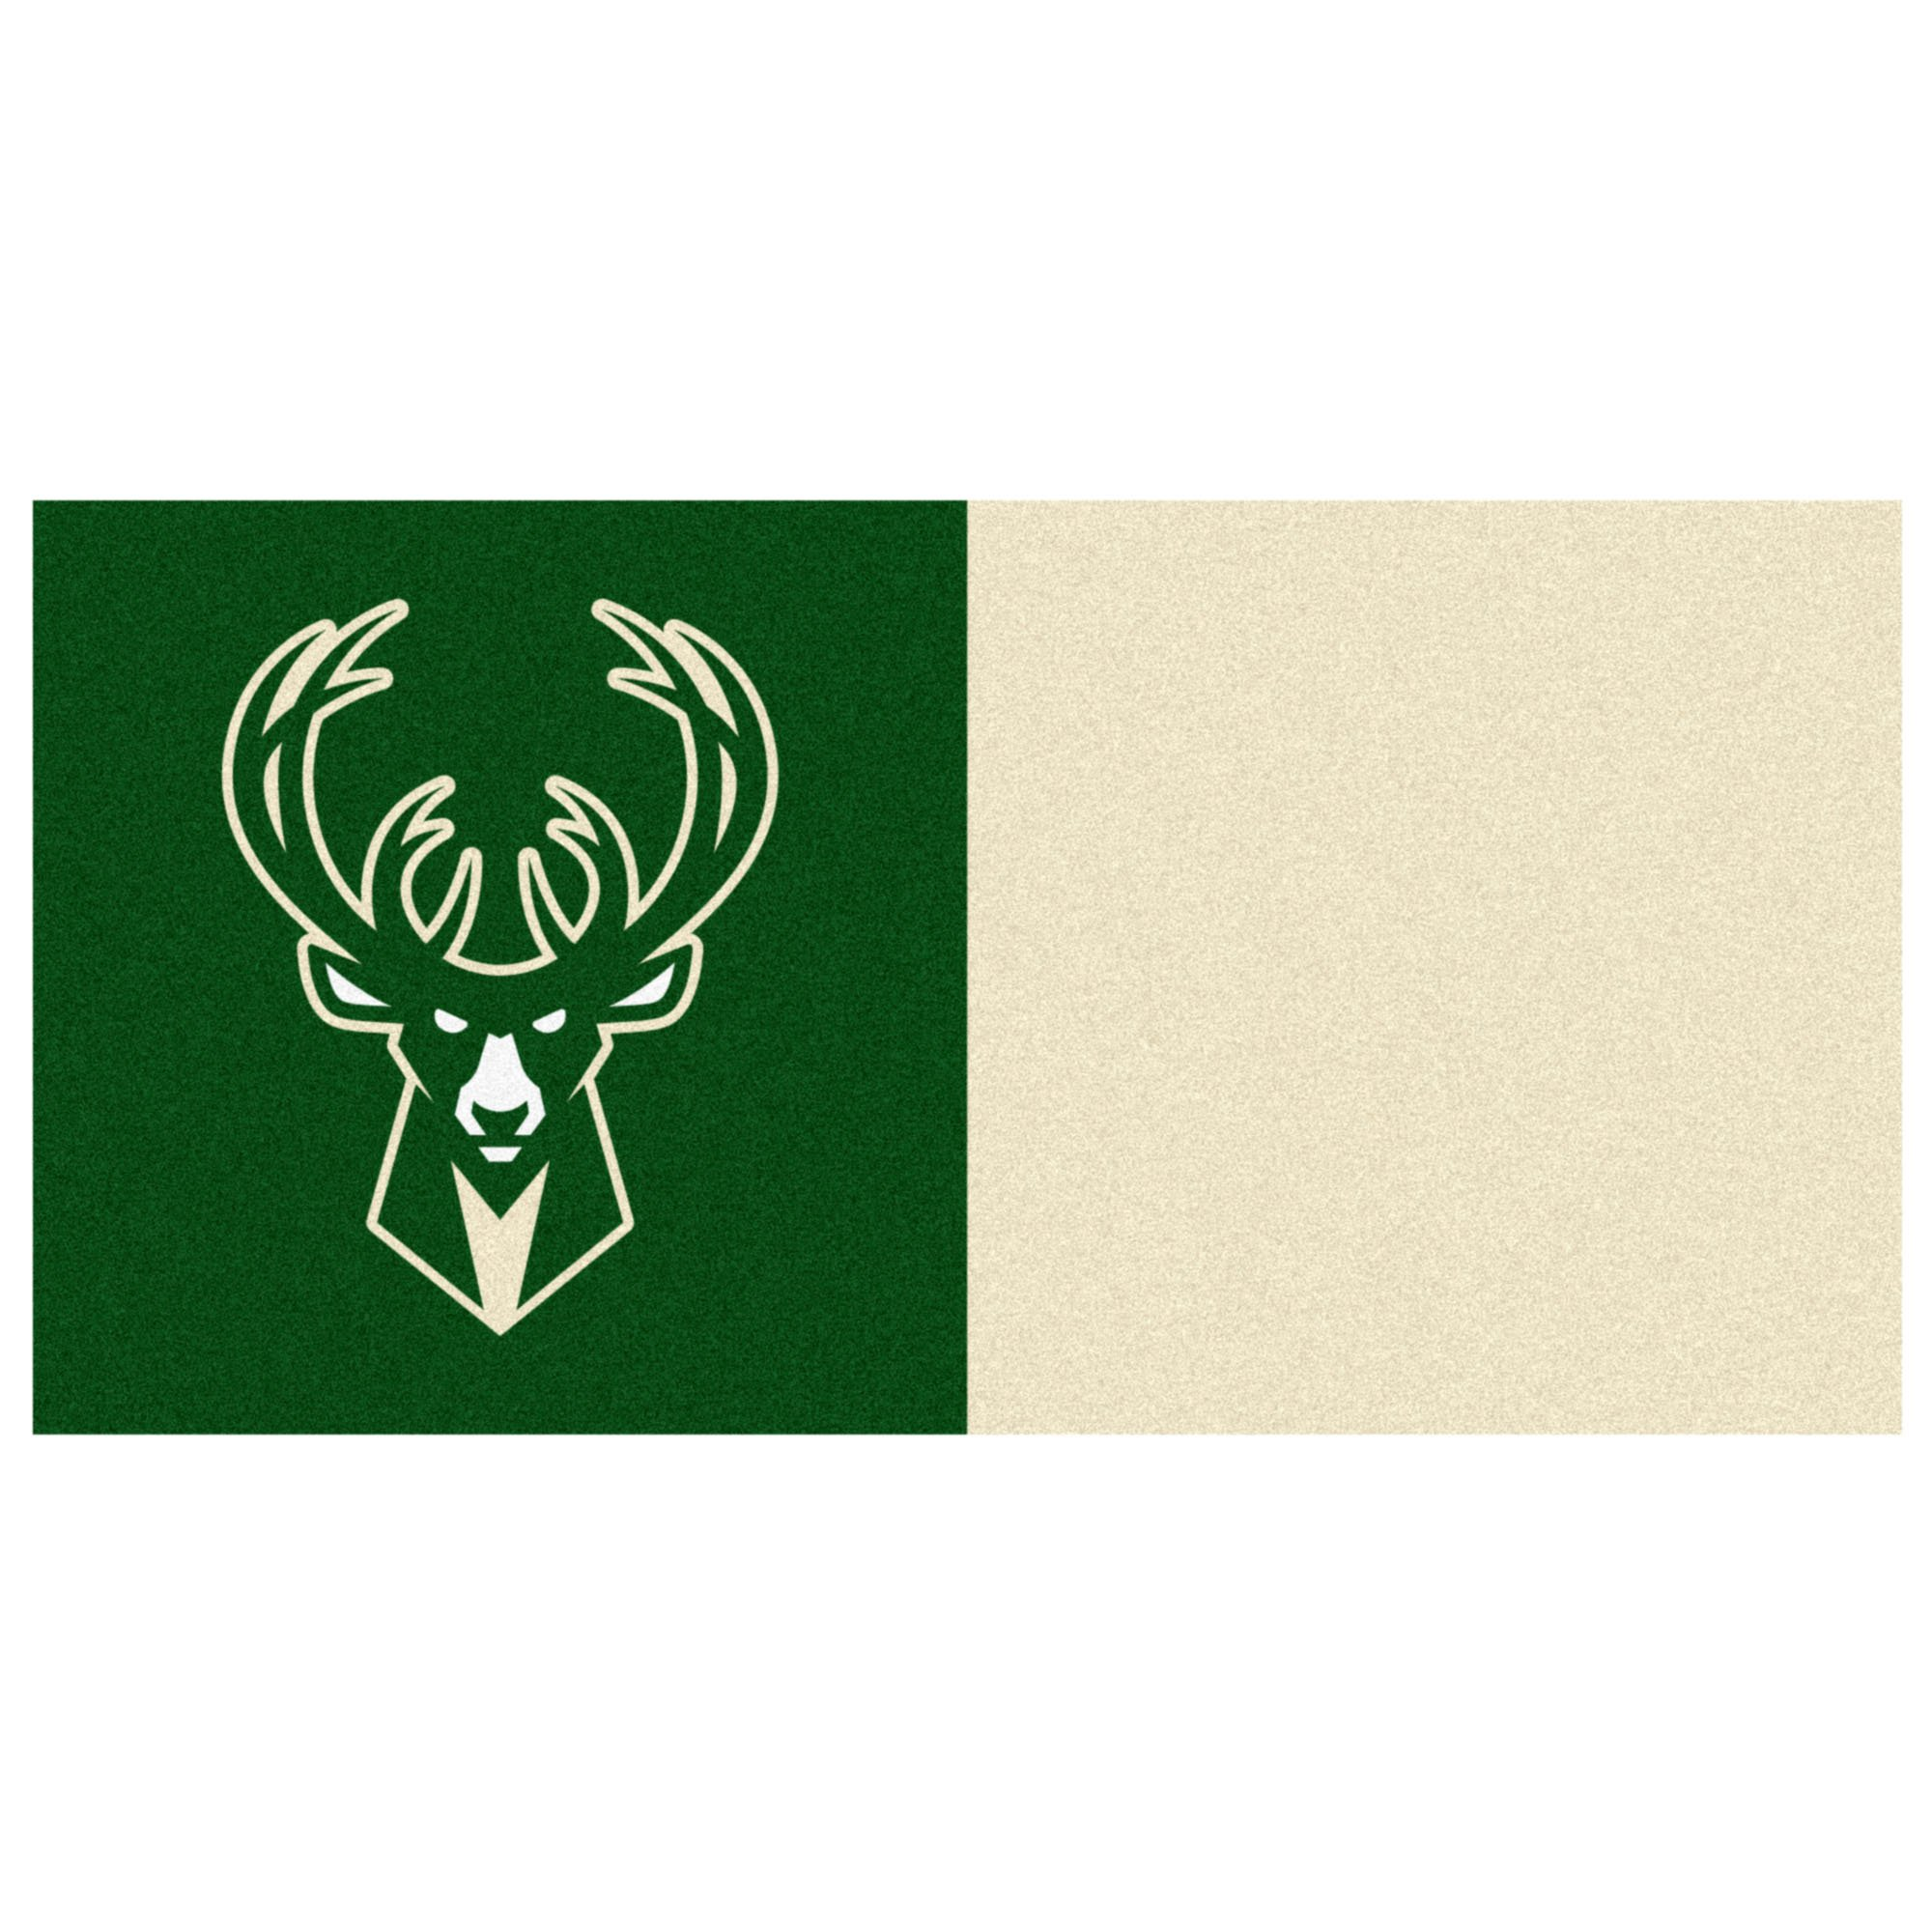 FANMATS NBA Milwaukee Bucks Nylon Face Team Carpet Tiles